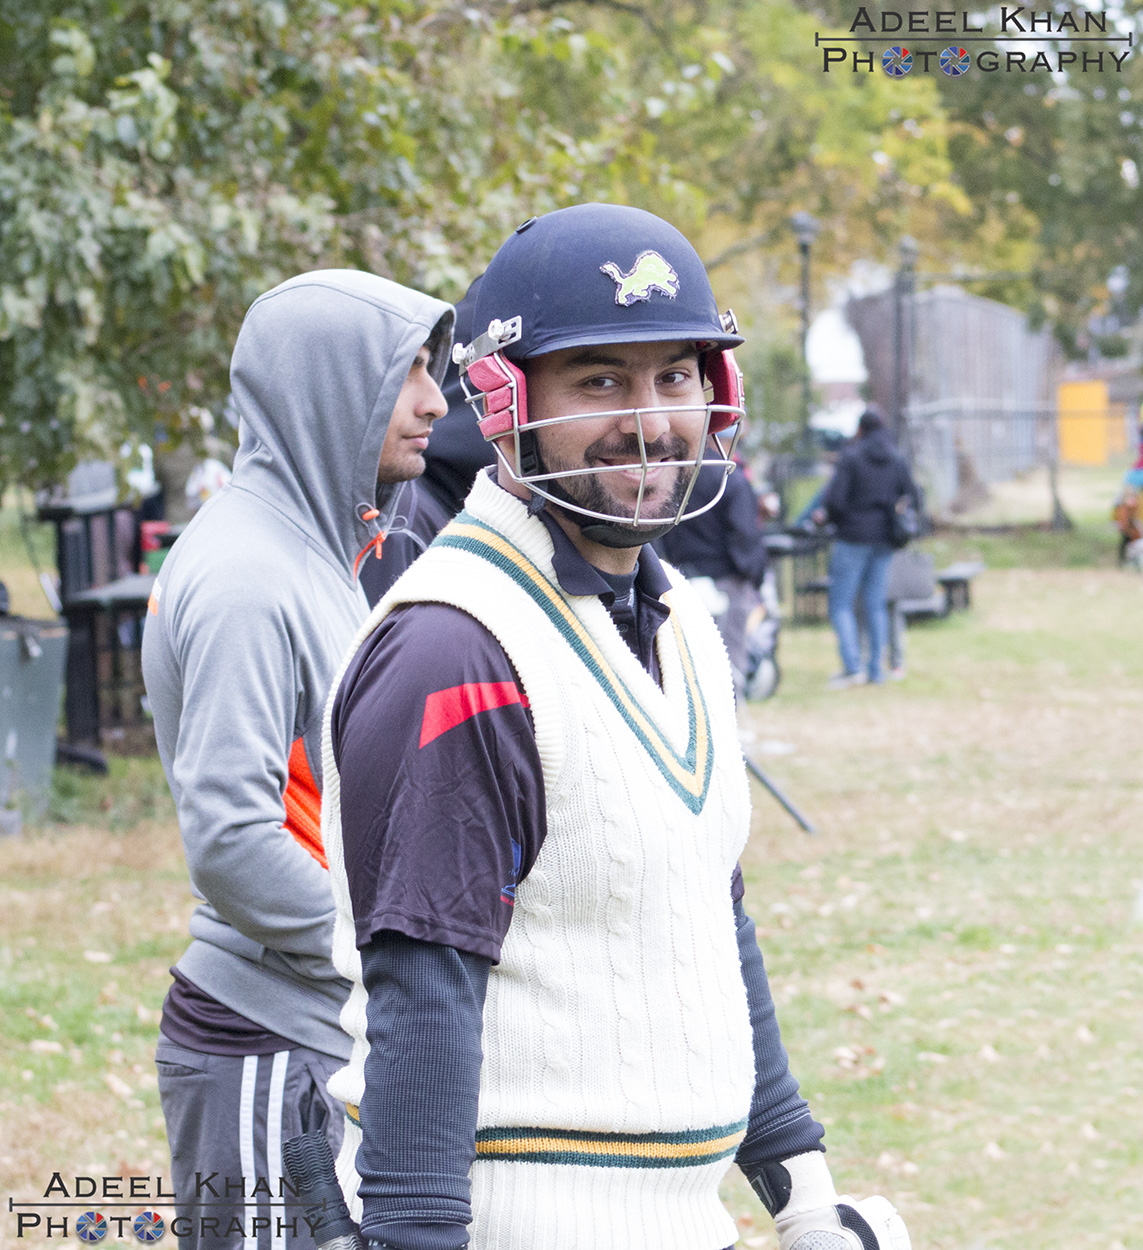 Brooklyn Cricket League, Cricket In New York, Cricket in NY, Cricket in America, American Cricket LEague, Rebels Cricket Club, Tamoor Haider